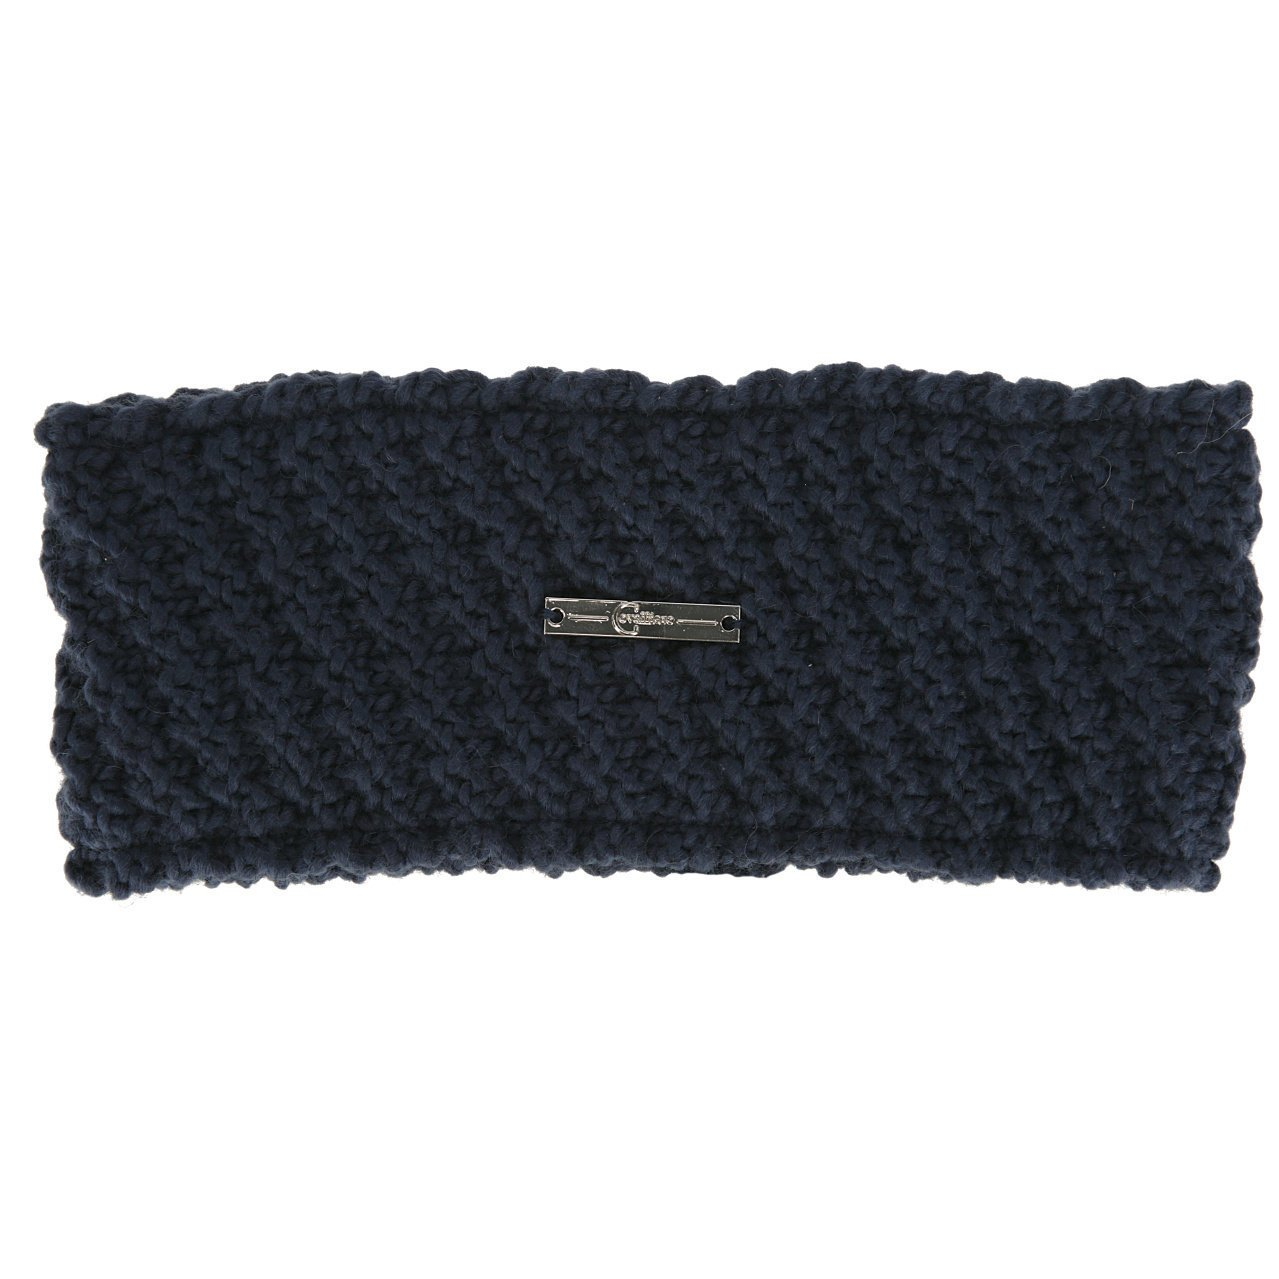 Covalliero Strickmuster Stirnband, dark blue